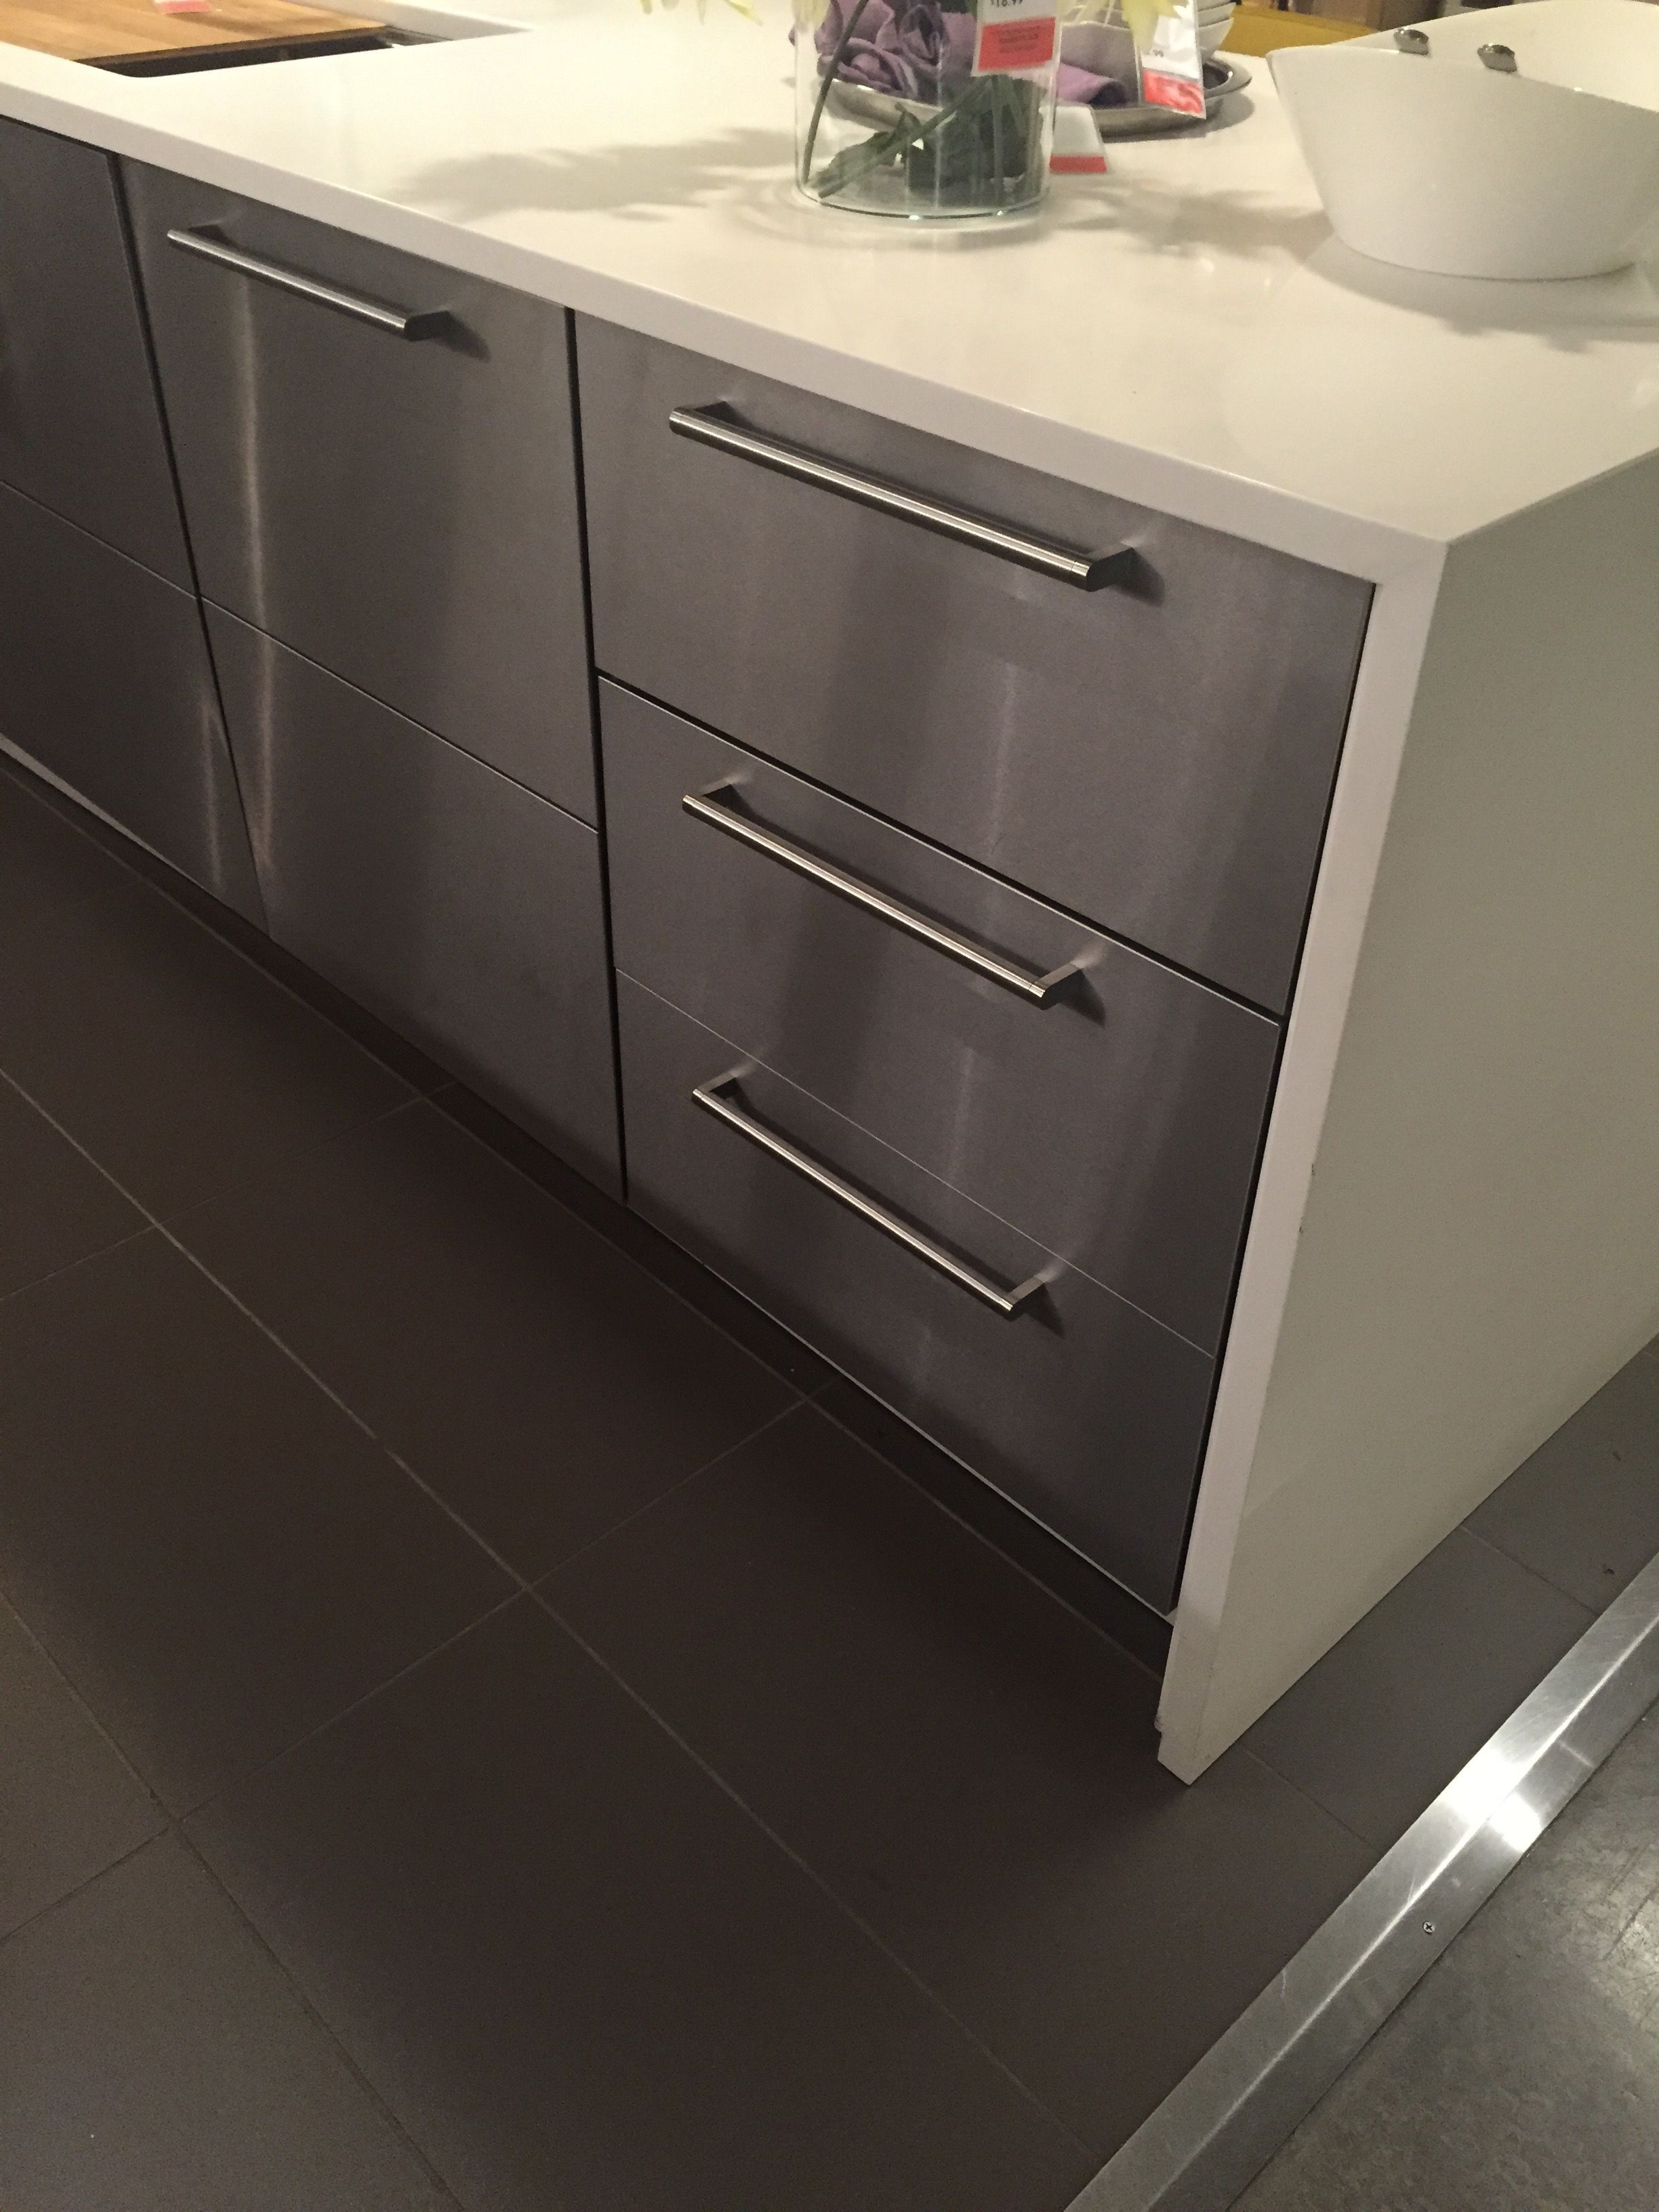 Ikea Grevsta Ikea Grevsta Stainless Panels | Kitchen | Pinterest